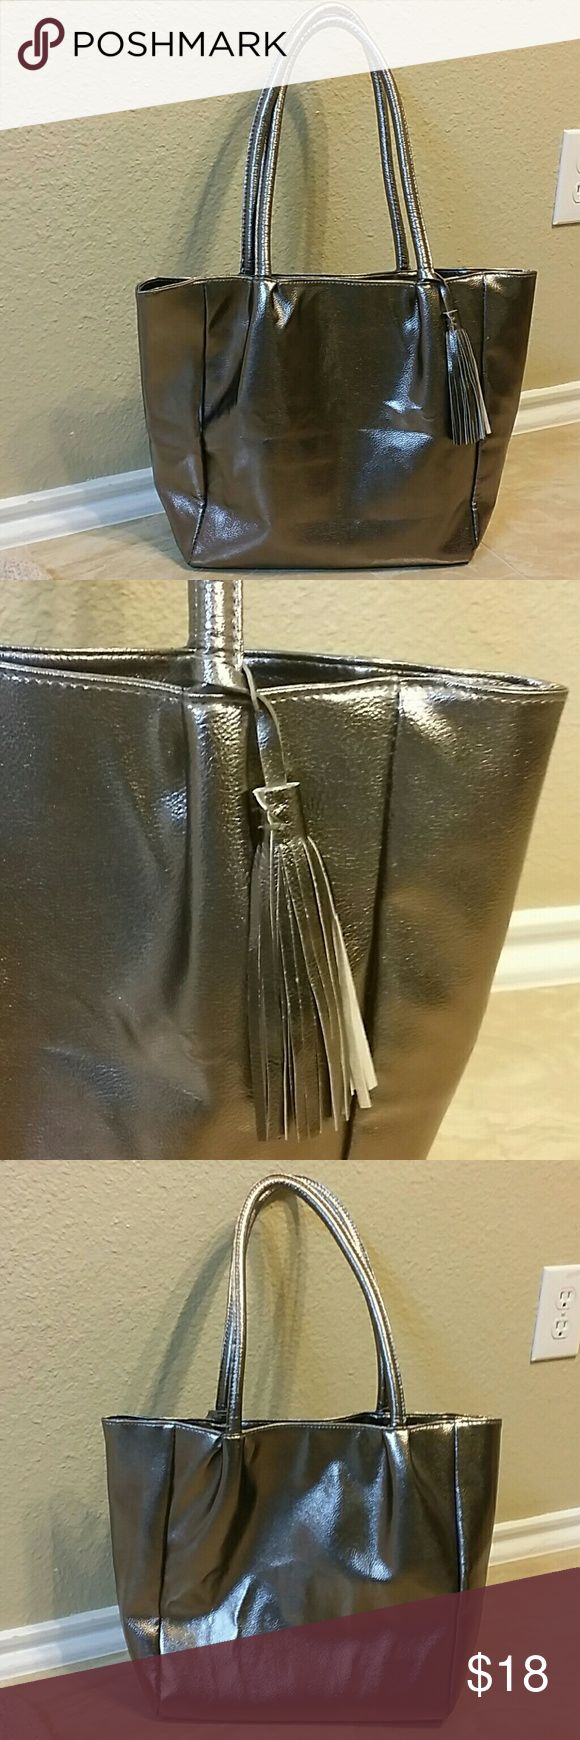 """Ultra Chi tote Silver color tote, great space inside with zippered pocket and slip pocket. Measures approximately 12x17x5"""", strap drop 10.5"""" Tiny nick (see last picture) Ultra Chi Bags Totes"""